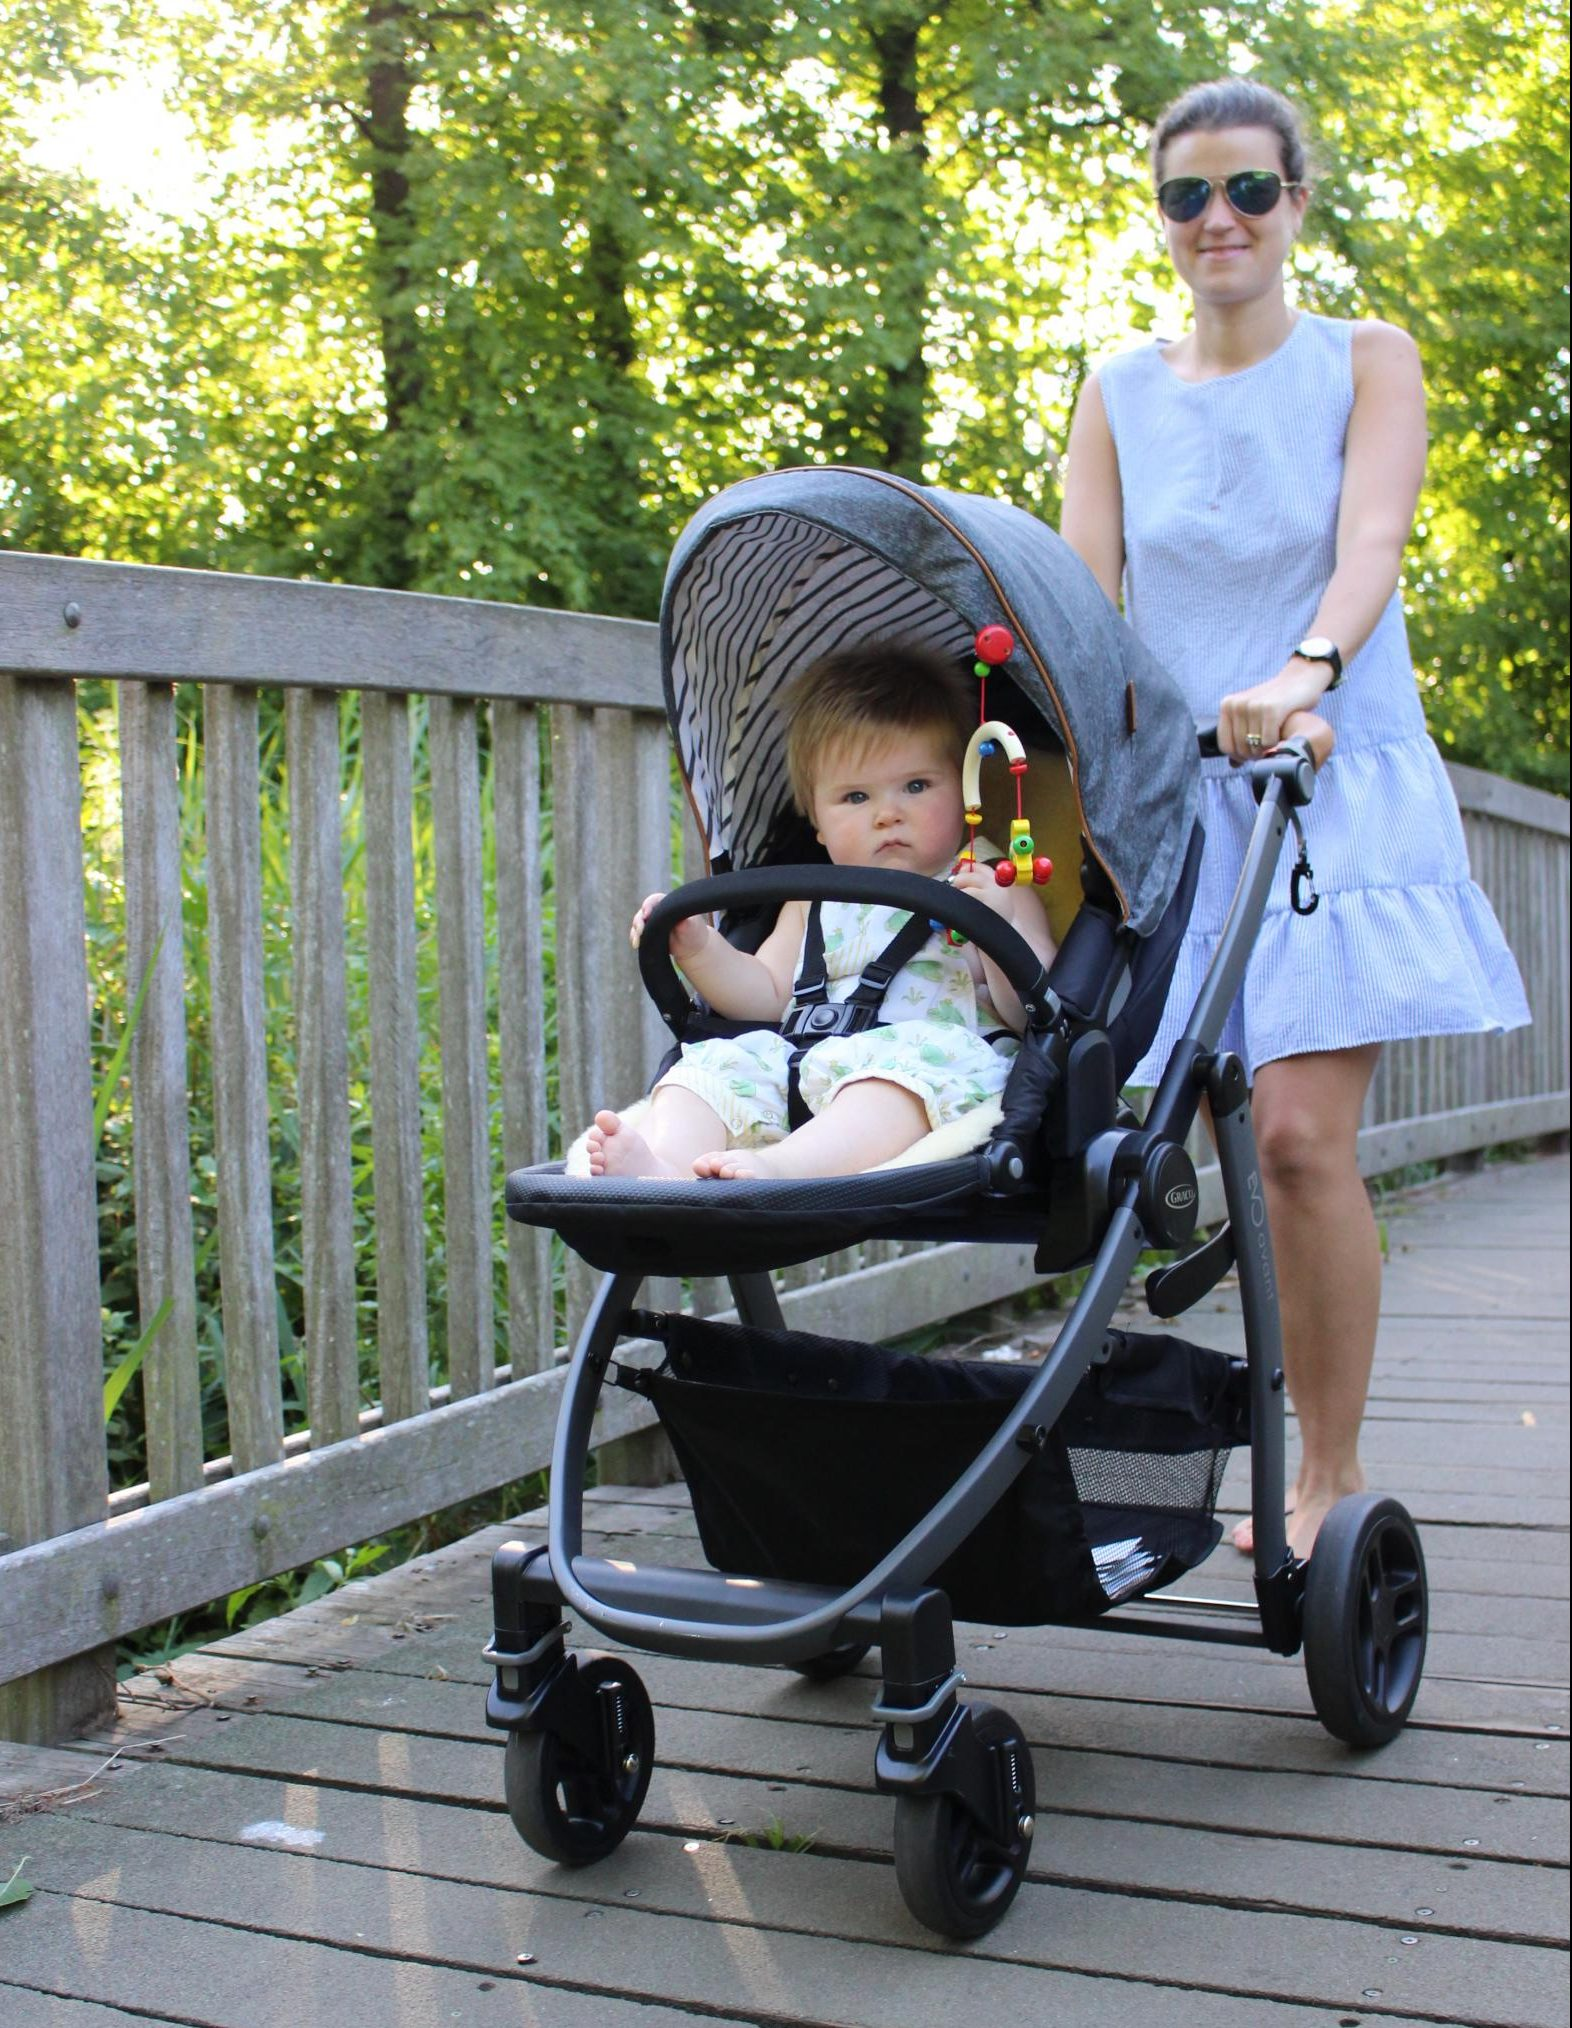 Graco Evo pushchair - top choice for dads and mums